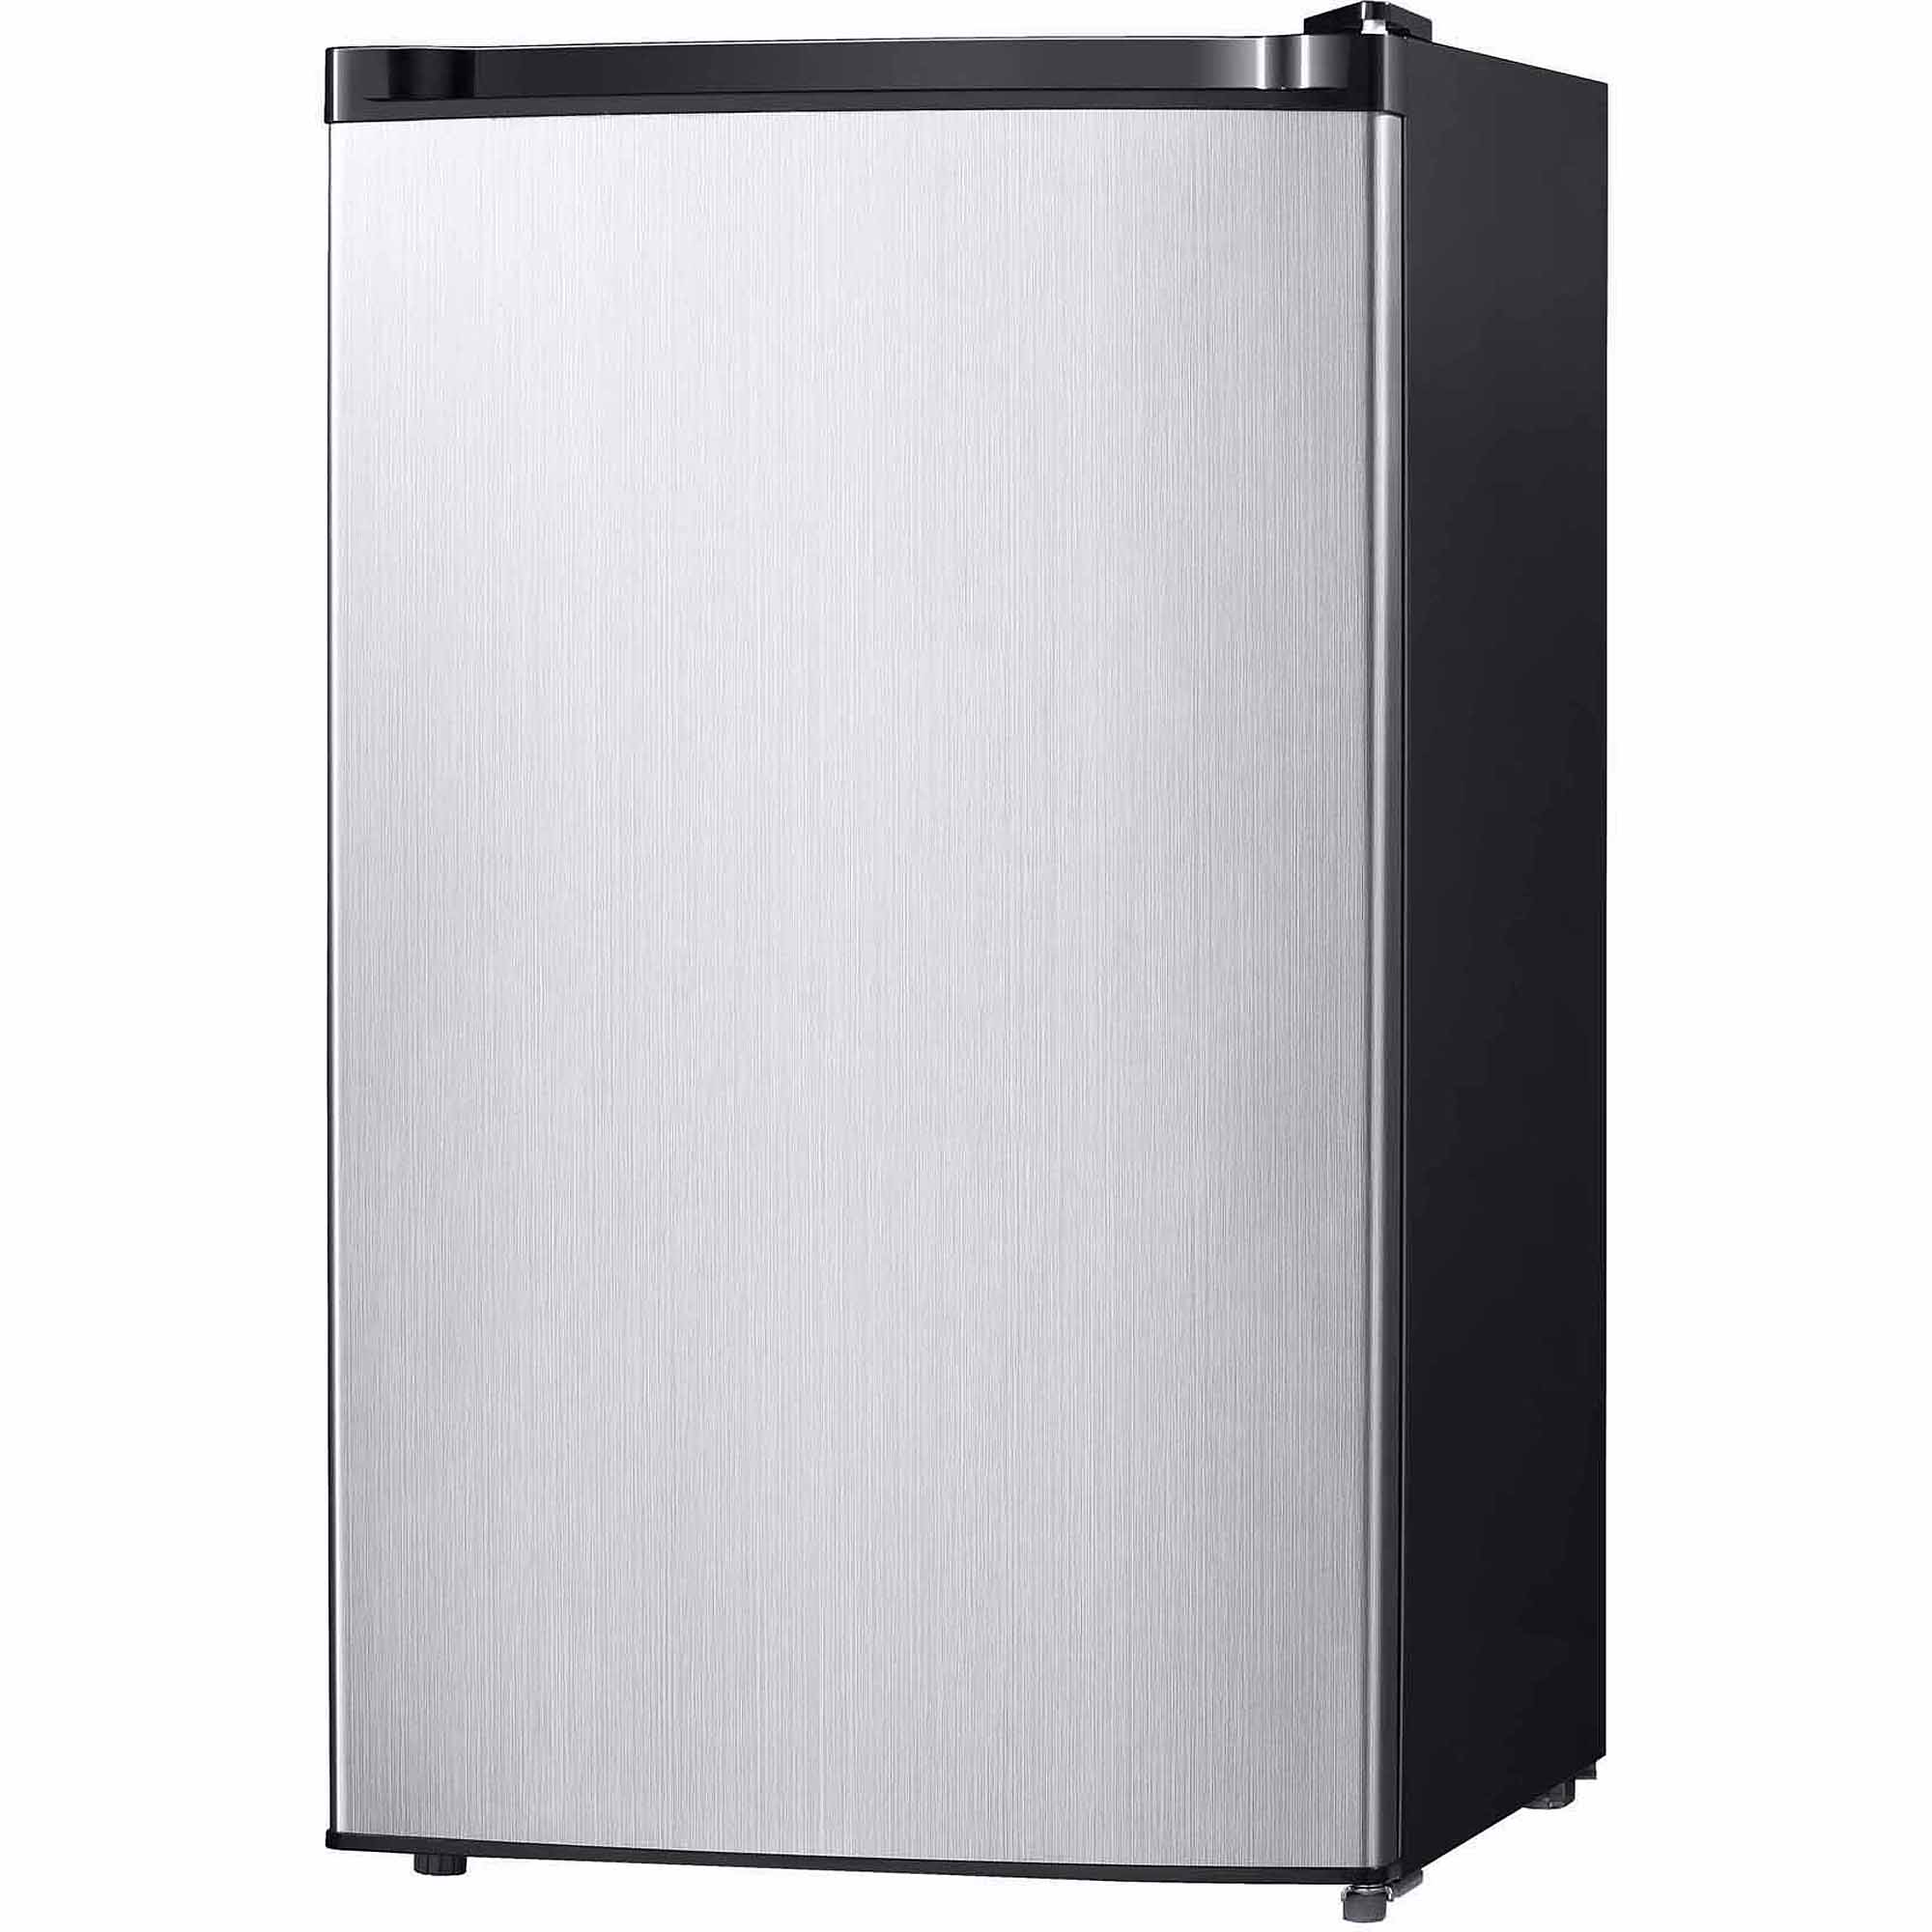 4.4 Cu. Ft. Free Standing Compact Refrigerator with Half-Width Chiller Compartment, Stainless Steel.